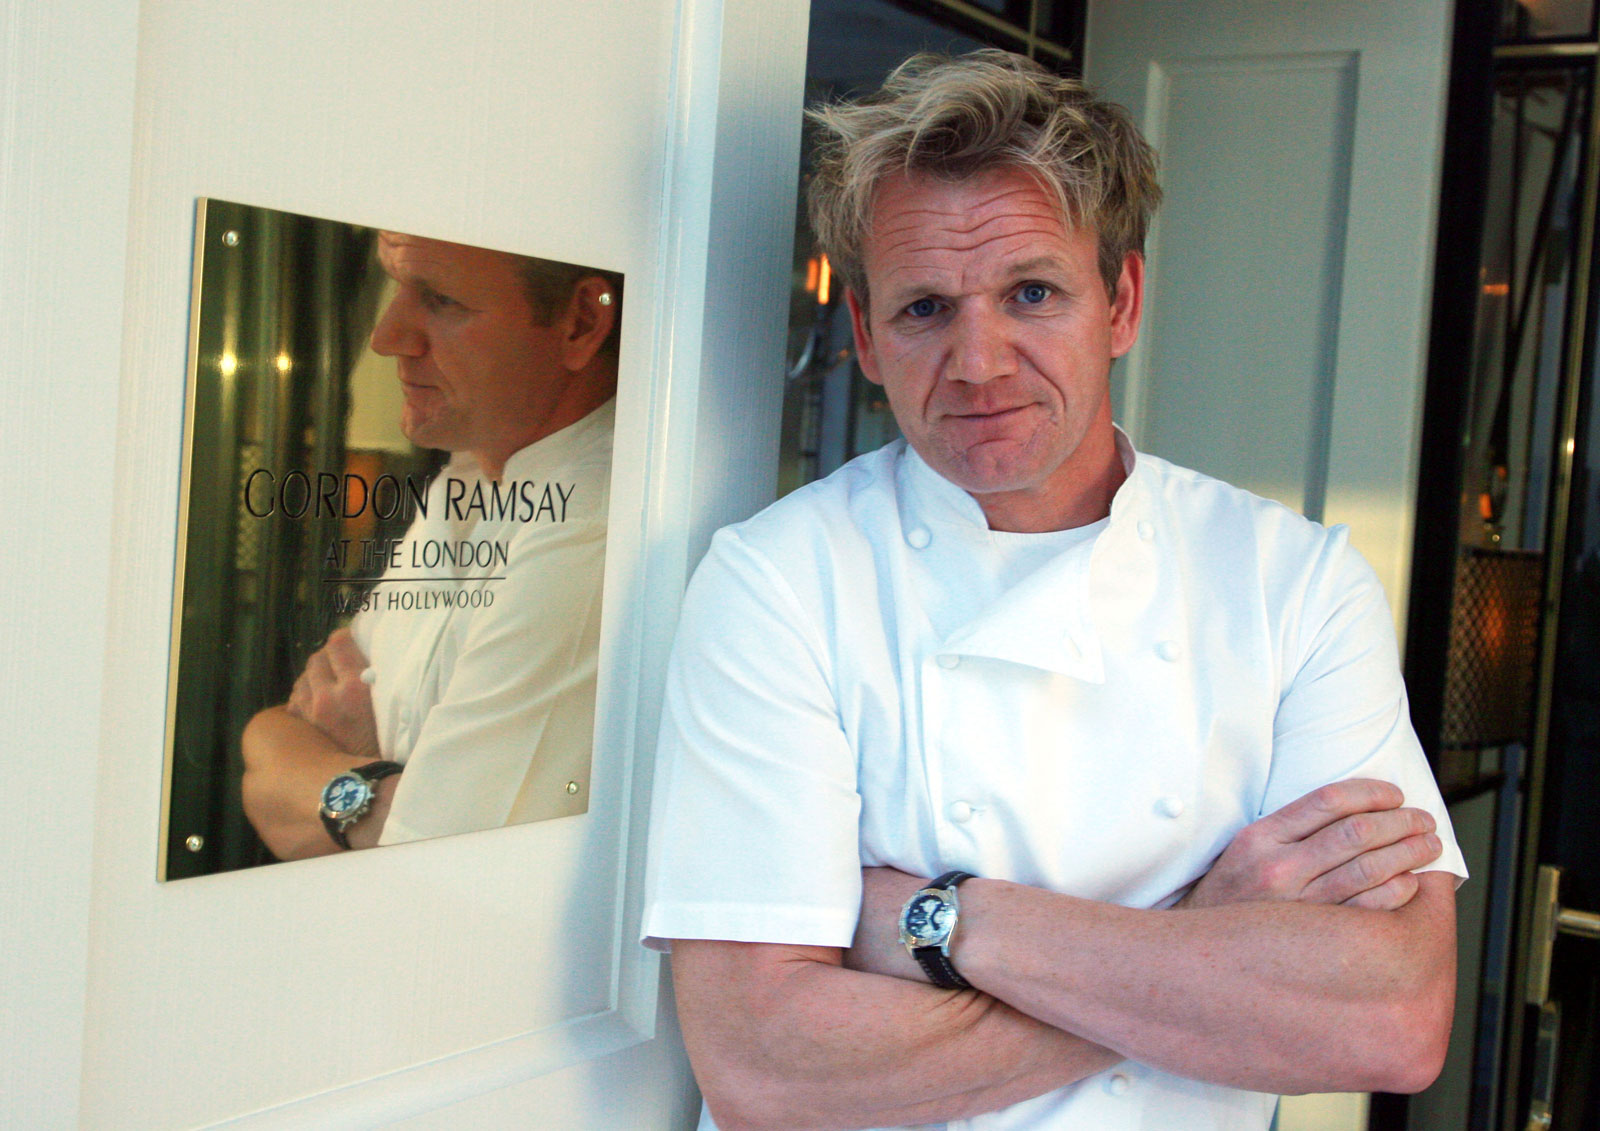 Gordon-Ramsay- One of the most influential chefs today